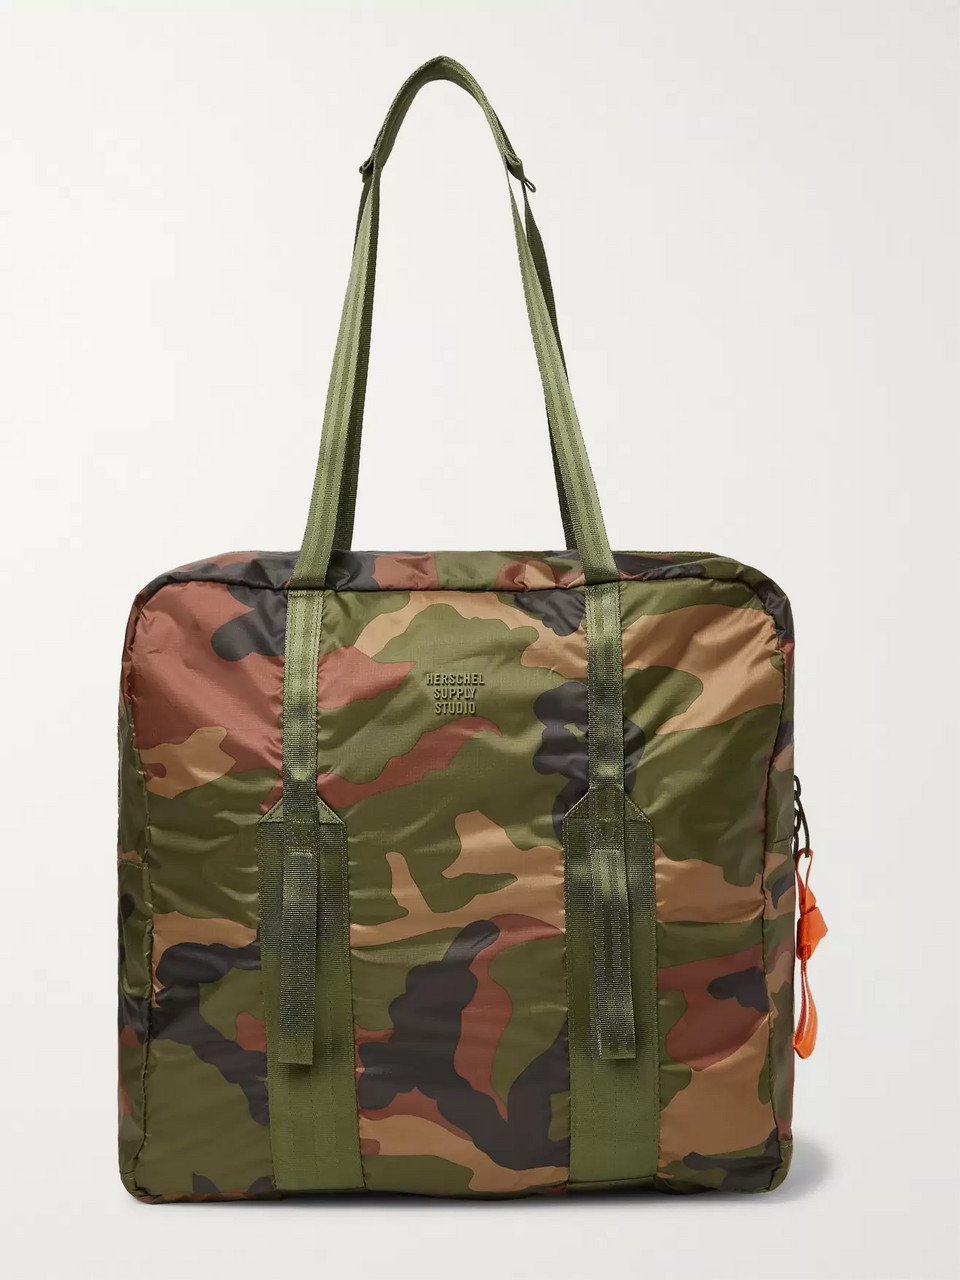 Herschel Supply Co Studio City Pack HS7 Camouflage-Print Ripstop Tote Bag